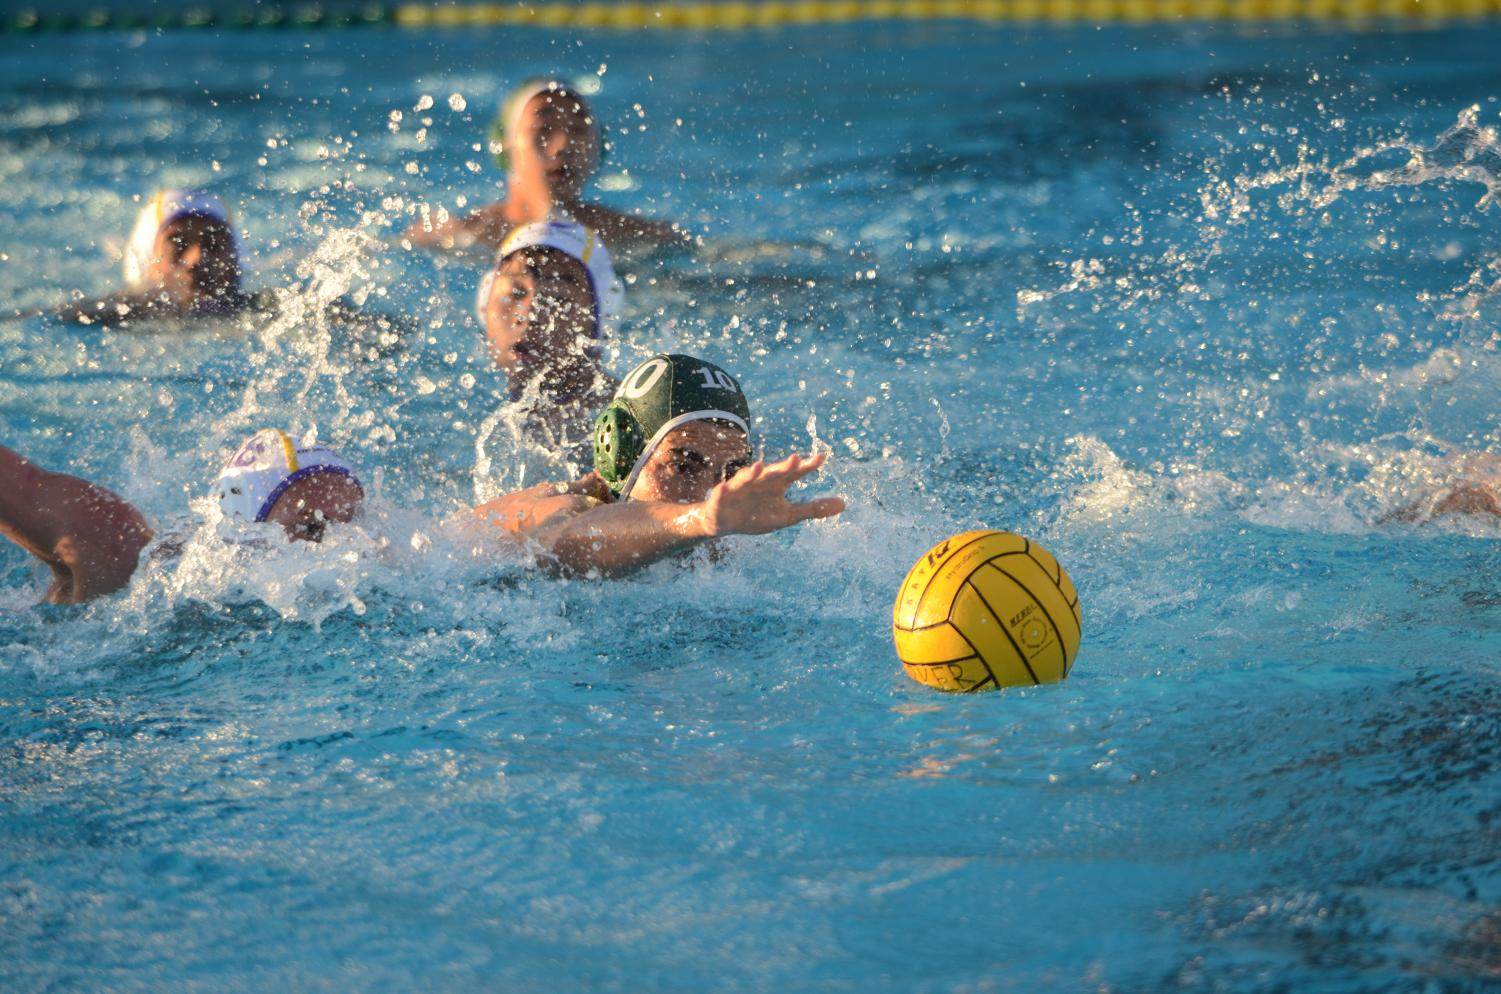 Varsity boys water polo captain Matthew Hajjar (12) reaches for the ball during a game against Monta Vista. The council  includes both junior varsity and varsity team leaders from all Harker sports.